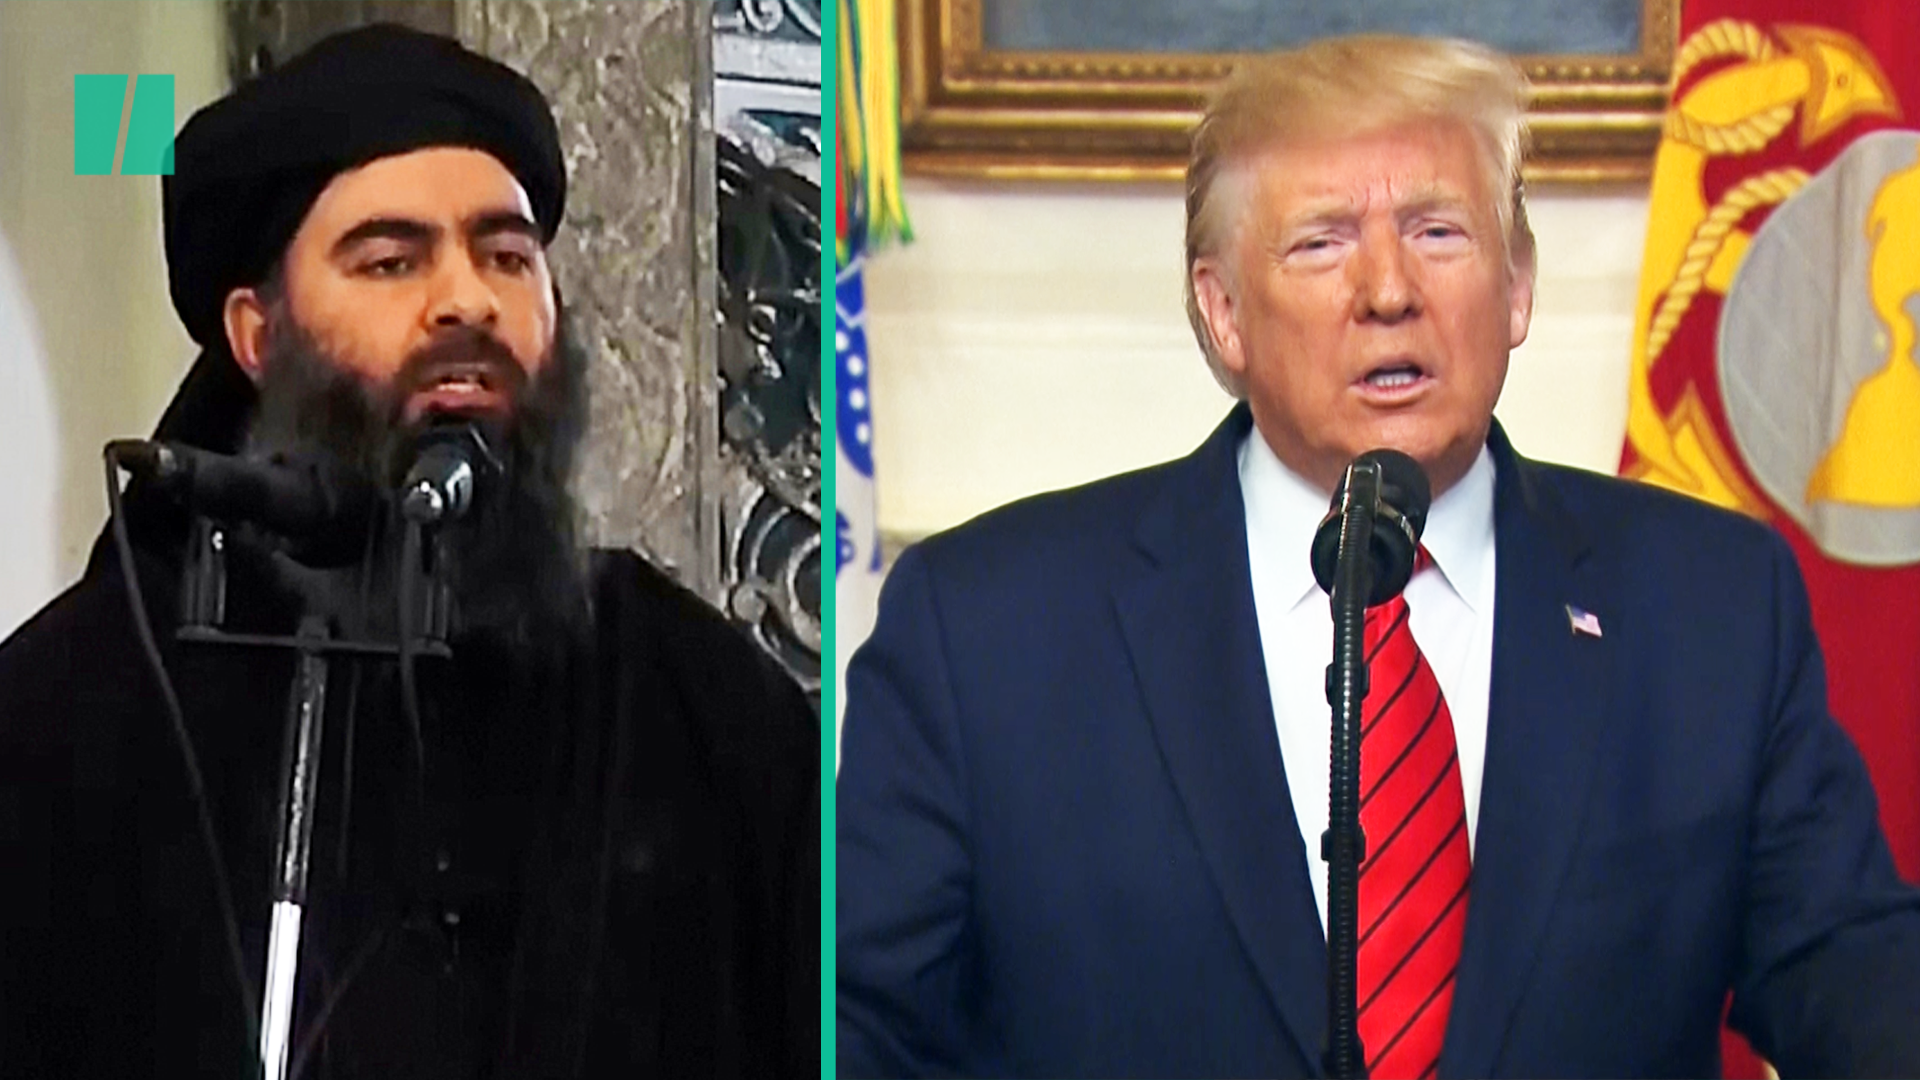 Baghdadi's Top Aide Was Key To His Capture, Report Claims